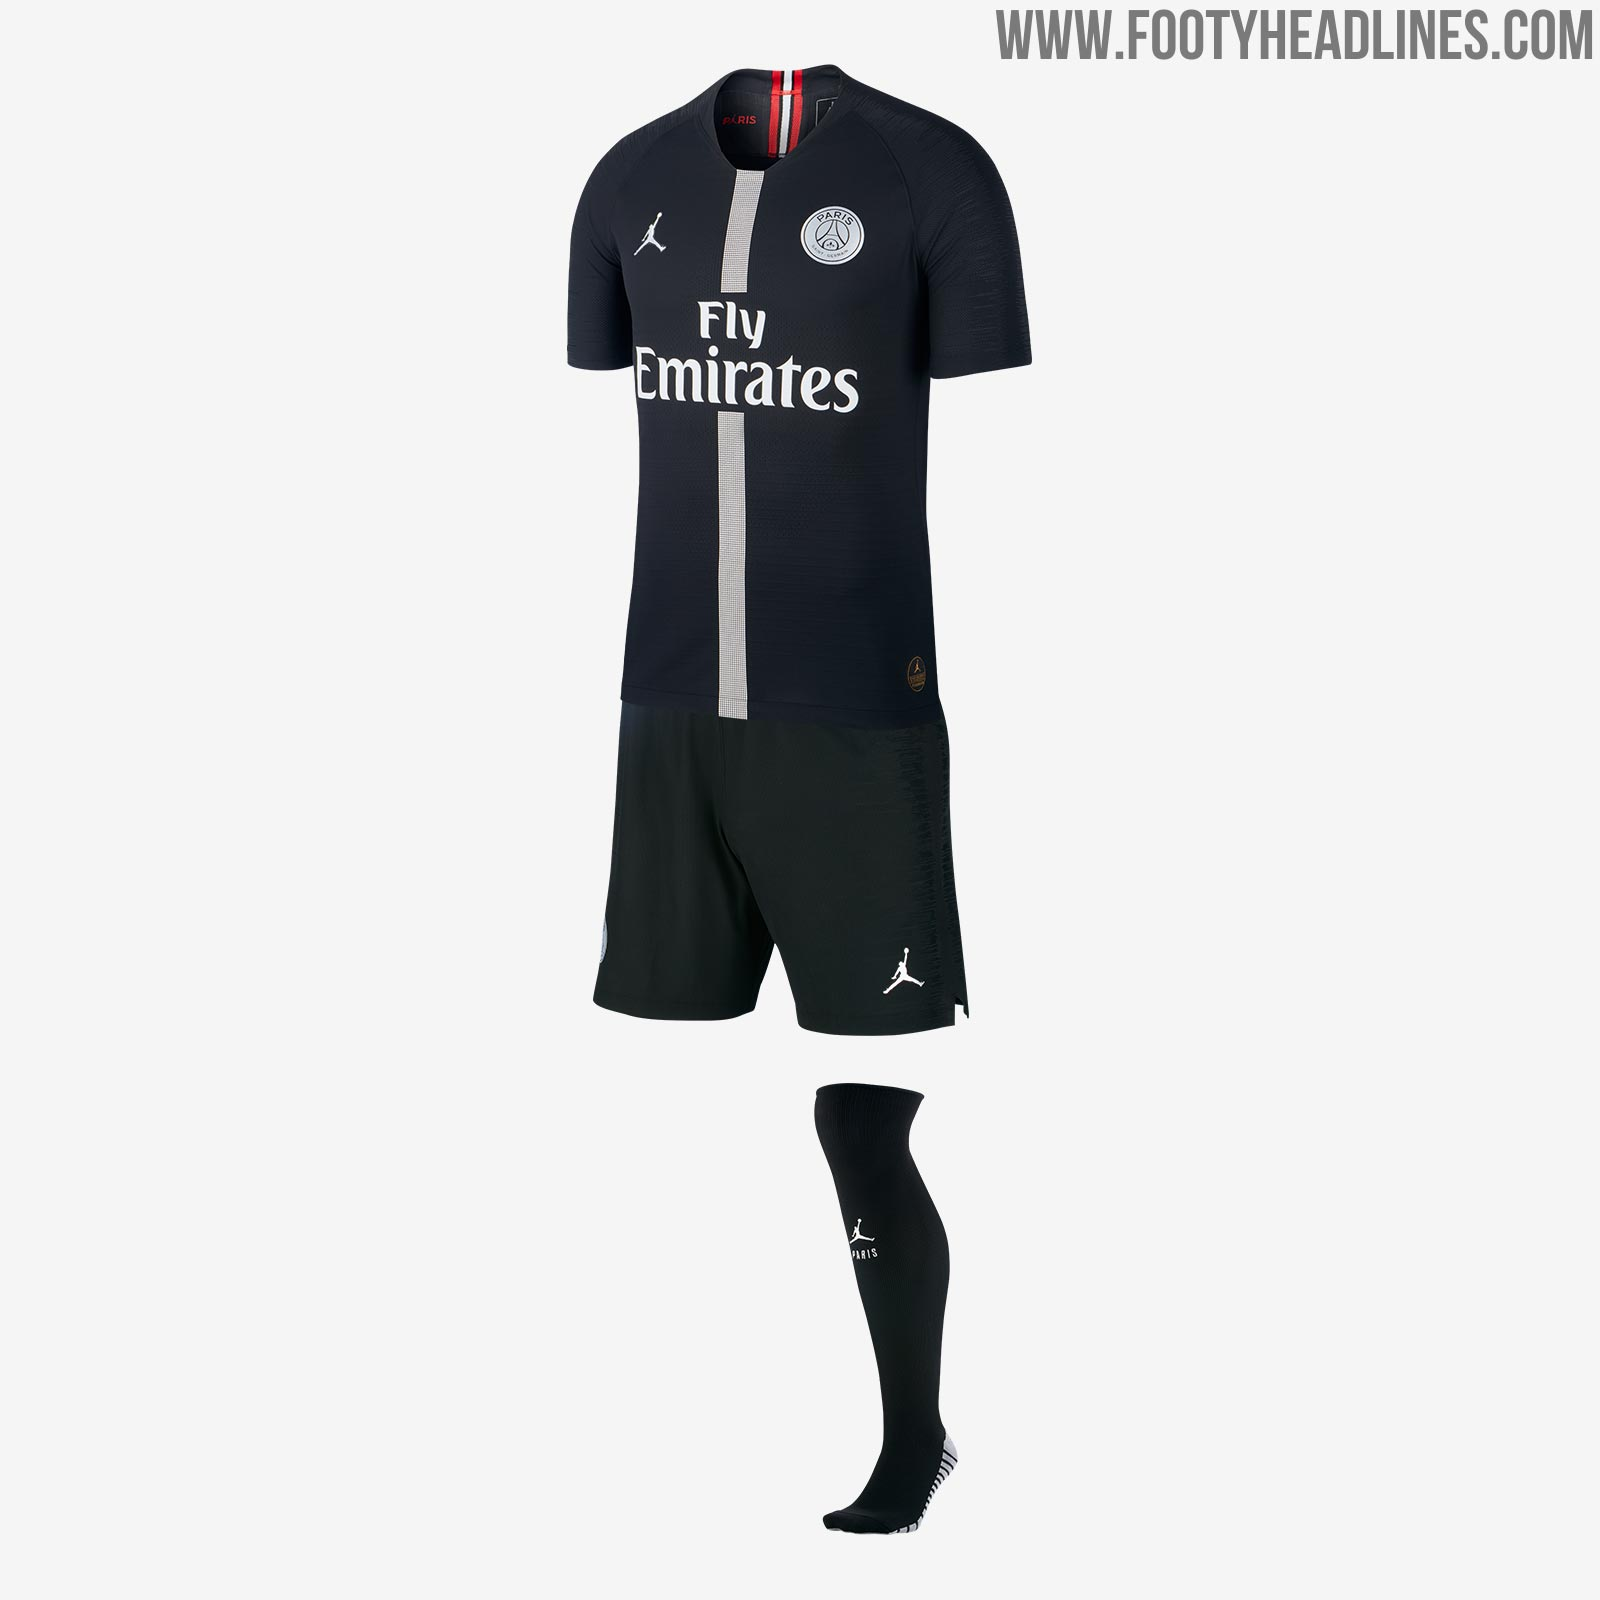 best service e3b7c c6e76 Jordan PSG 18-19 Champions League Kits Released - Footy ...